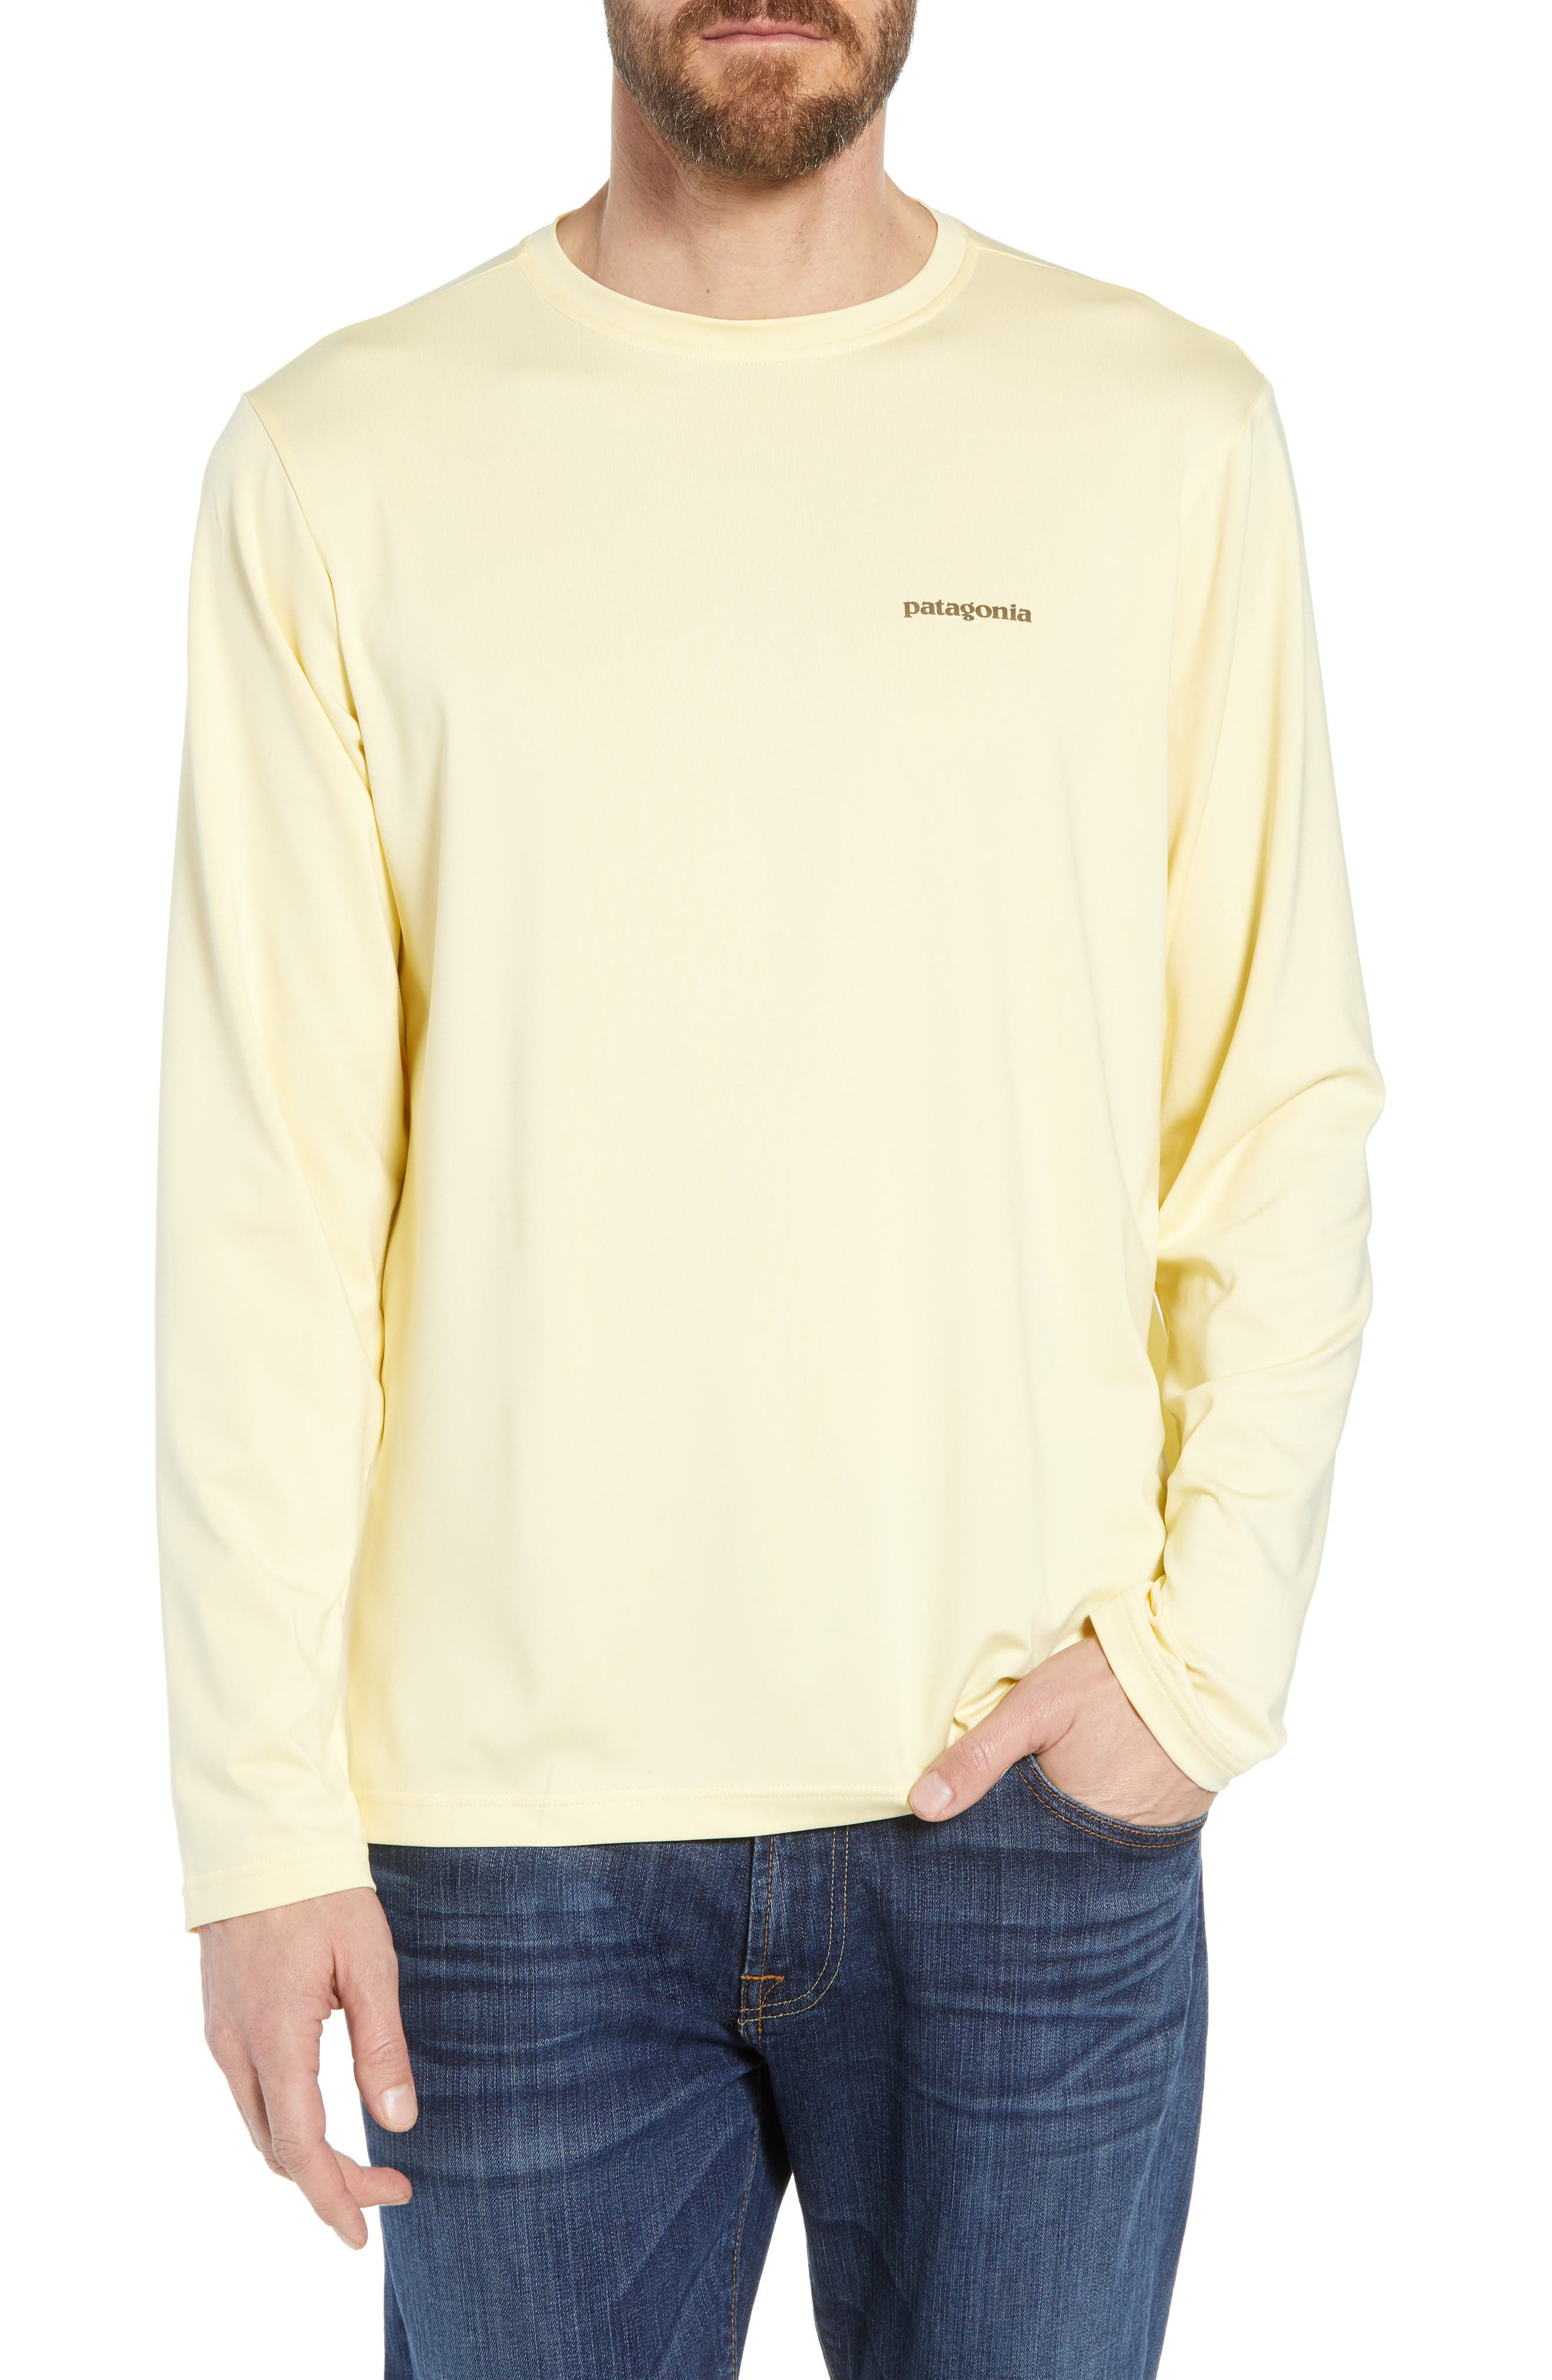 Tech Fish Graphic Long Sleeve T-Shirt,                         Main,                         color, Lucky Fly/ Crest Yellow